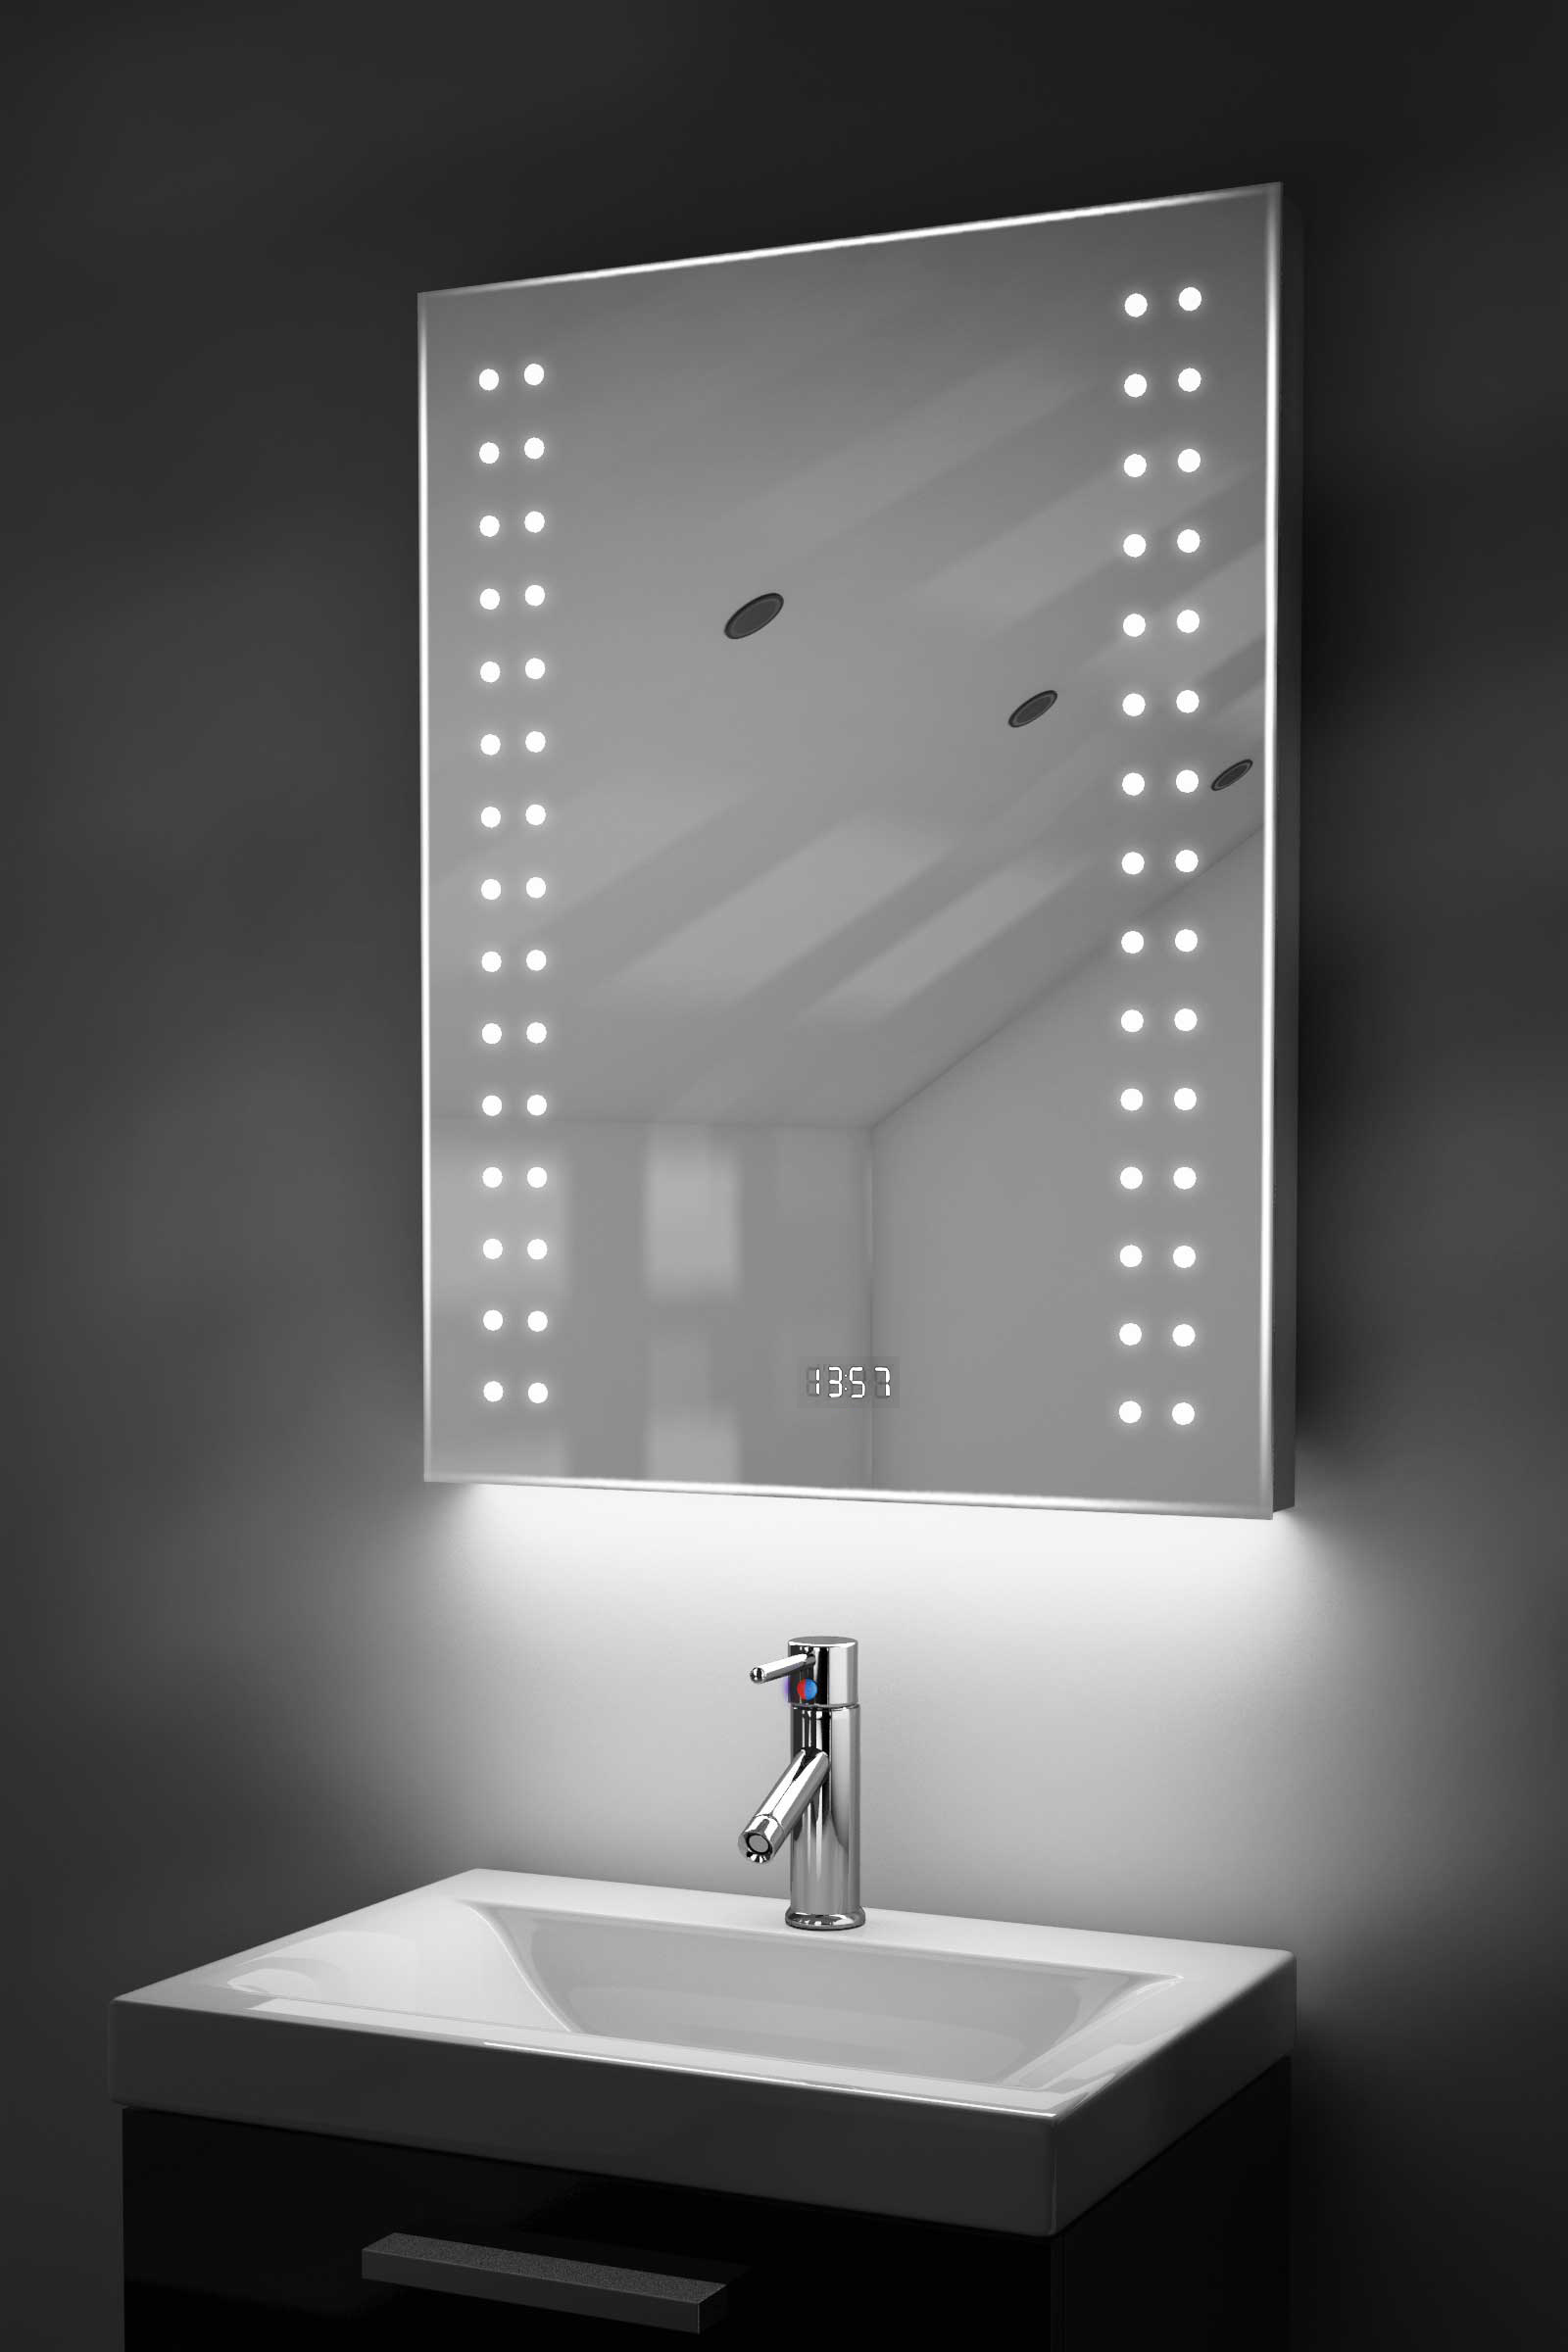 Image Is Loading Digital Clock Shaver Bathroom Mirror With Under Lighting